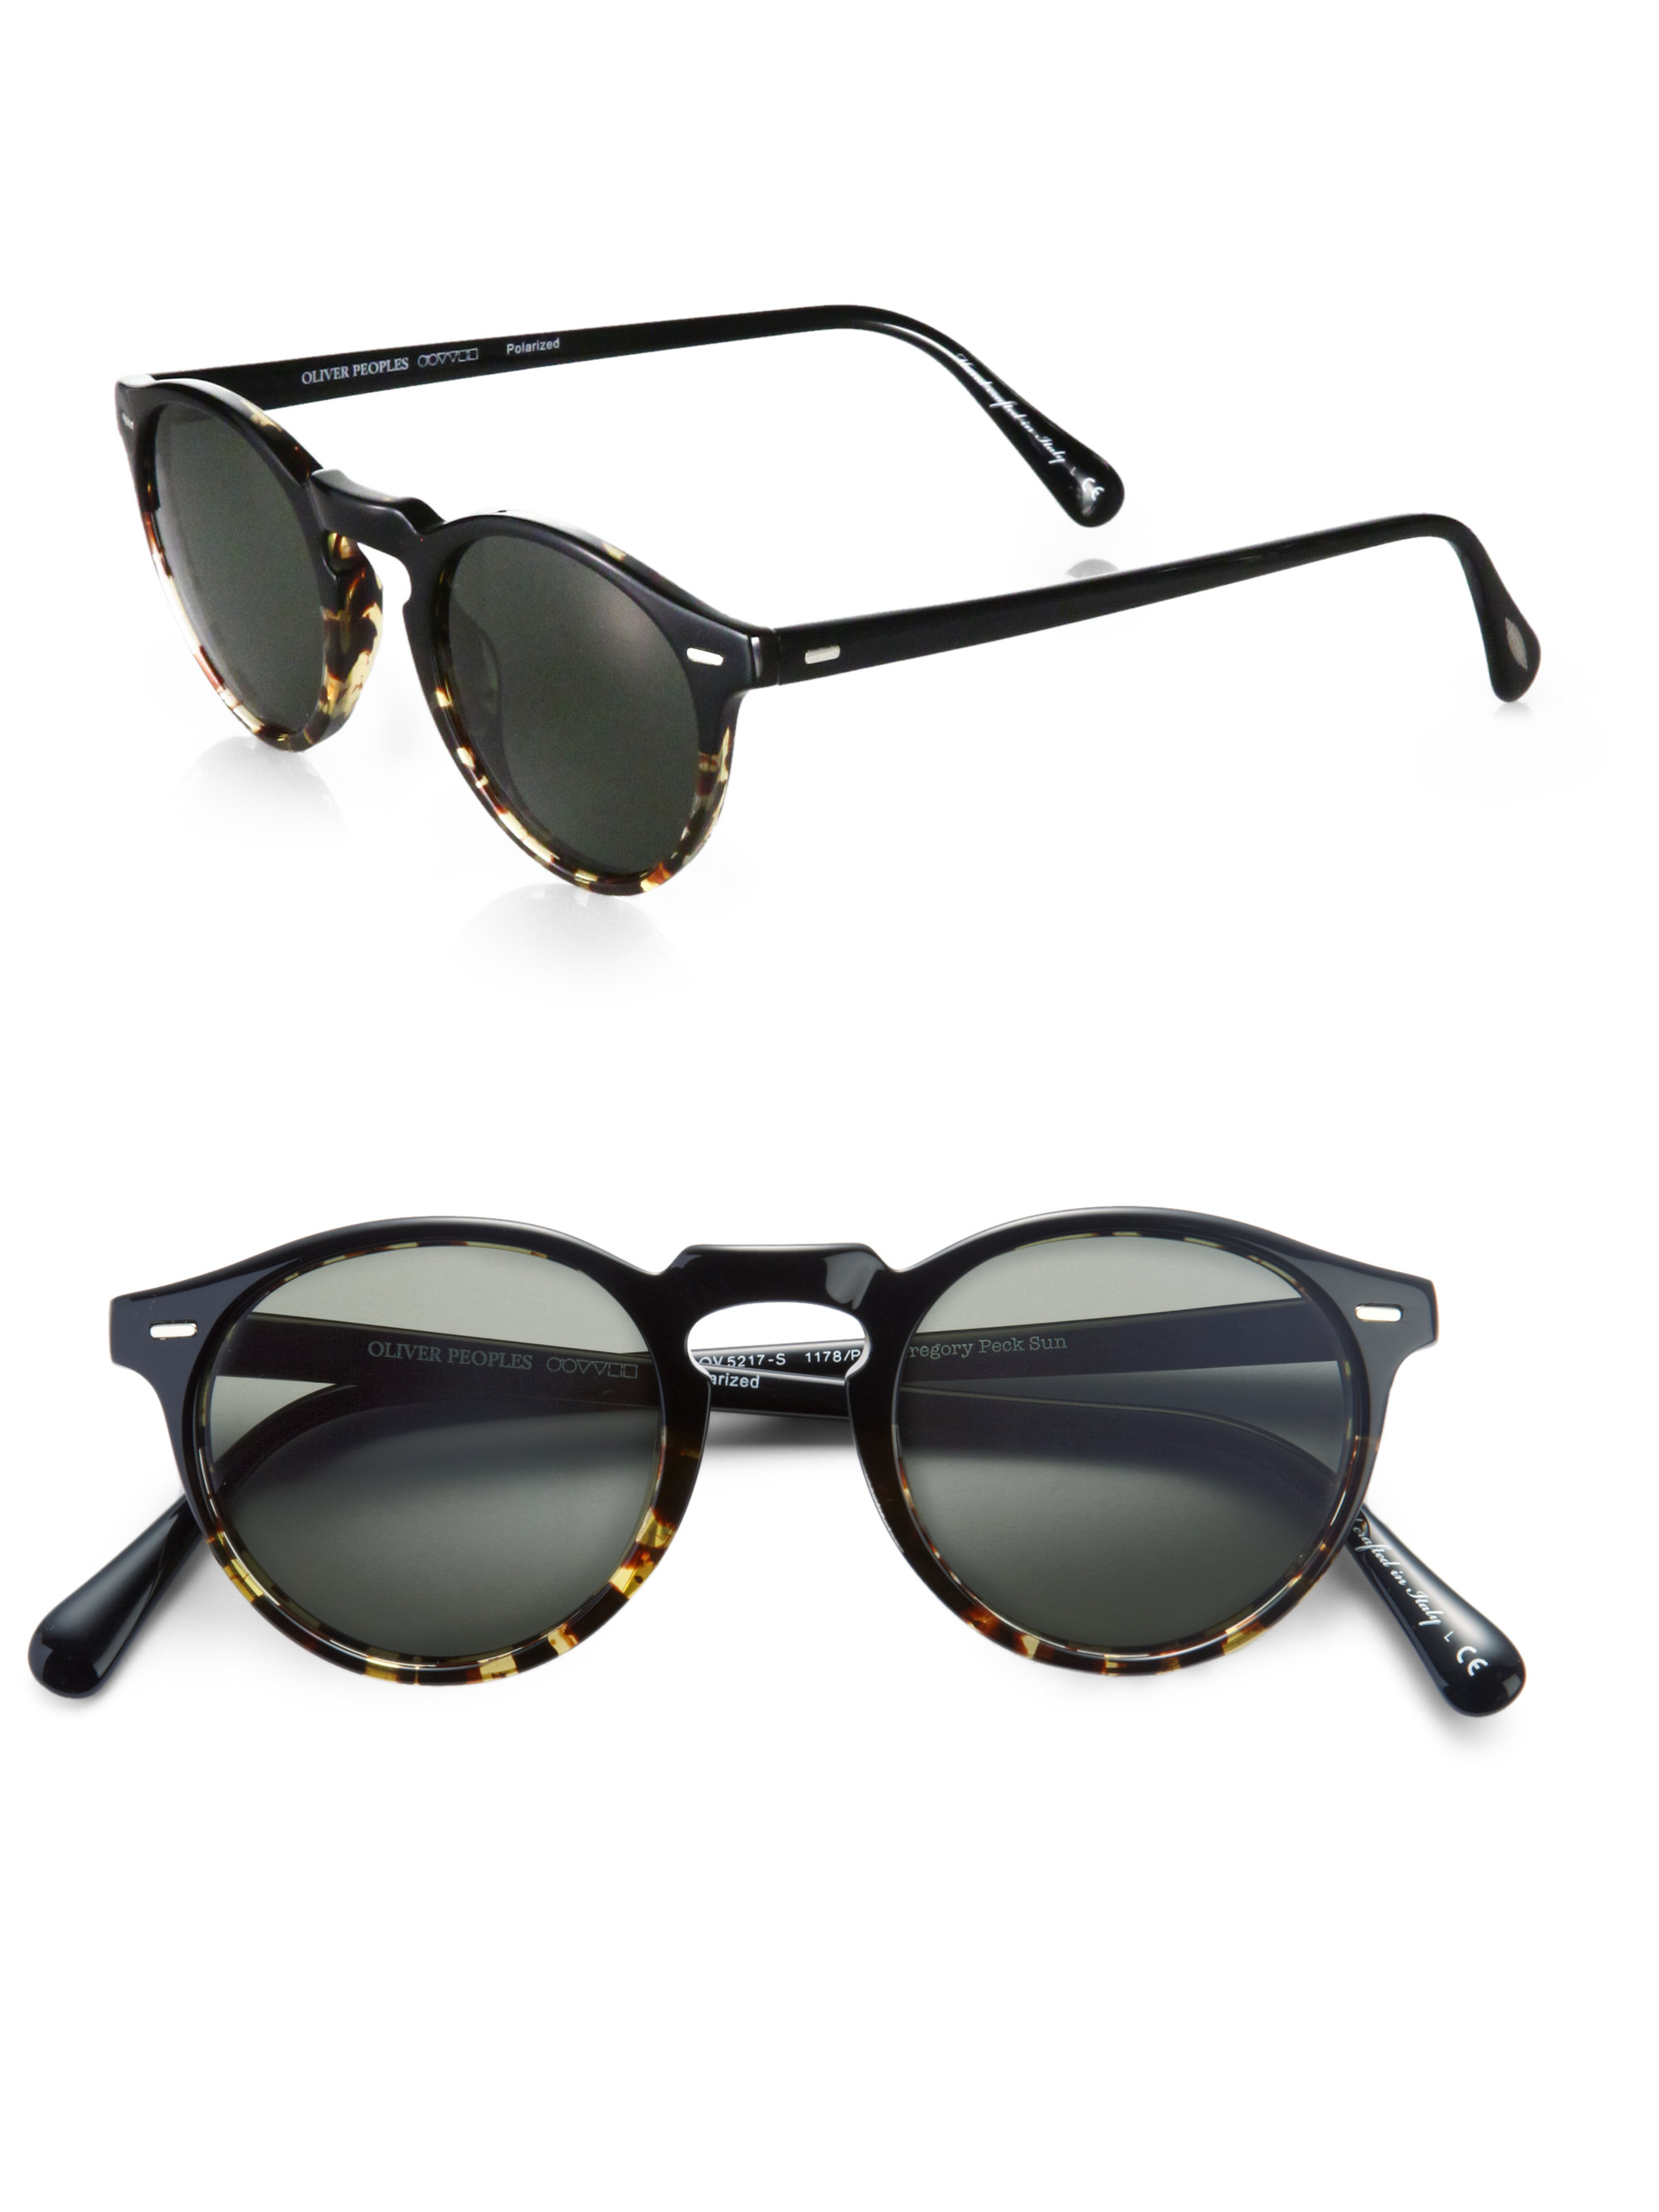 3e8760c7099 Lyst - Oliver Peoples Gregory Peck Round Polarized Sunglasses in Black